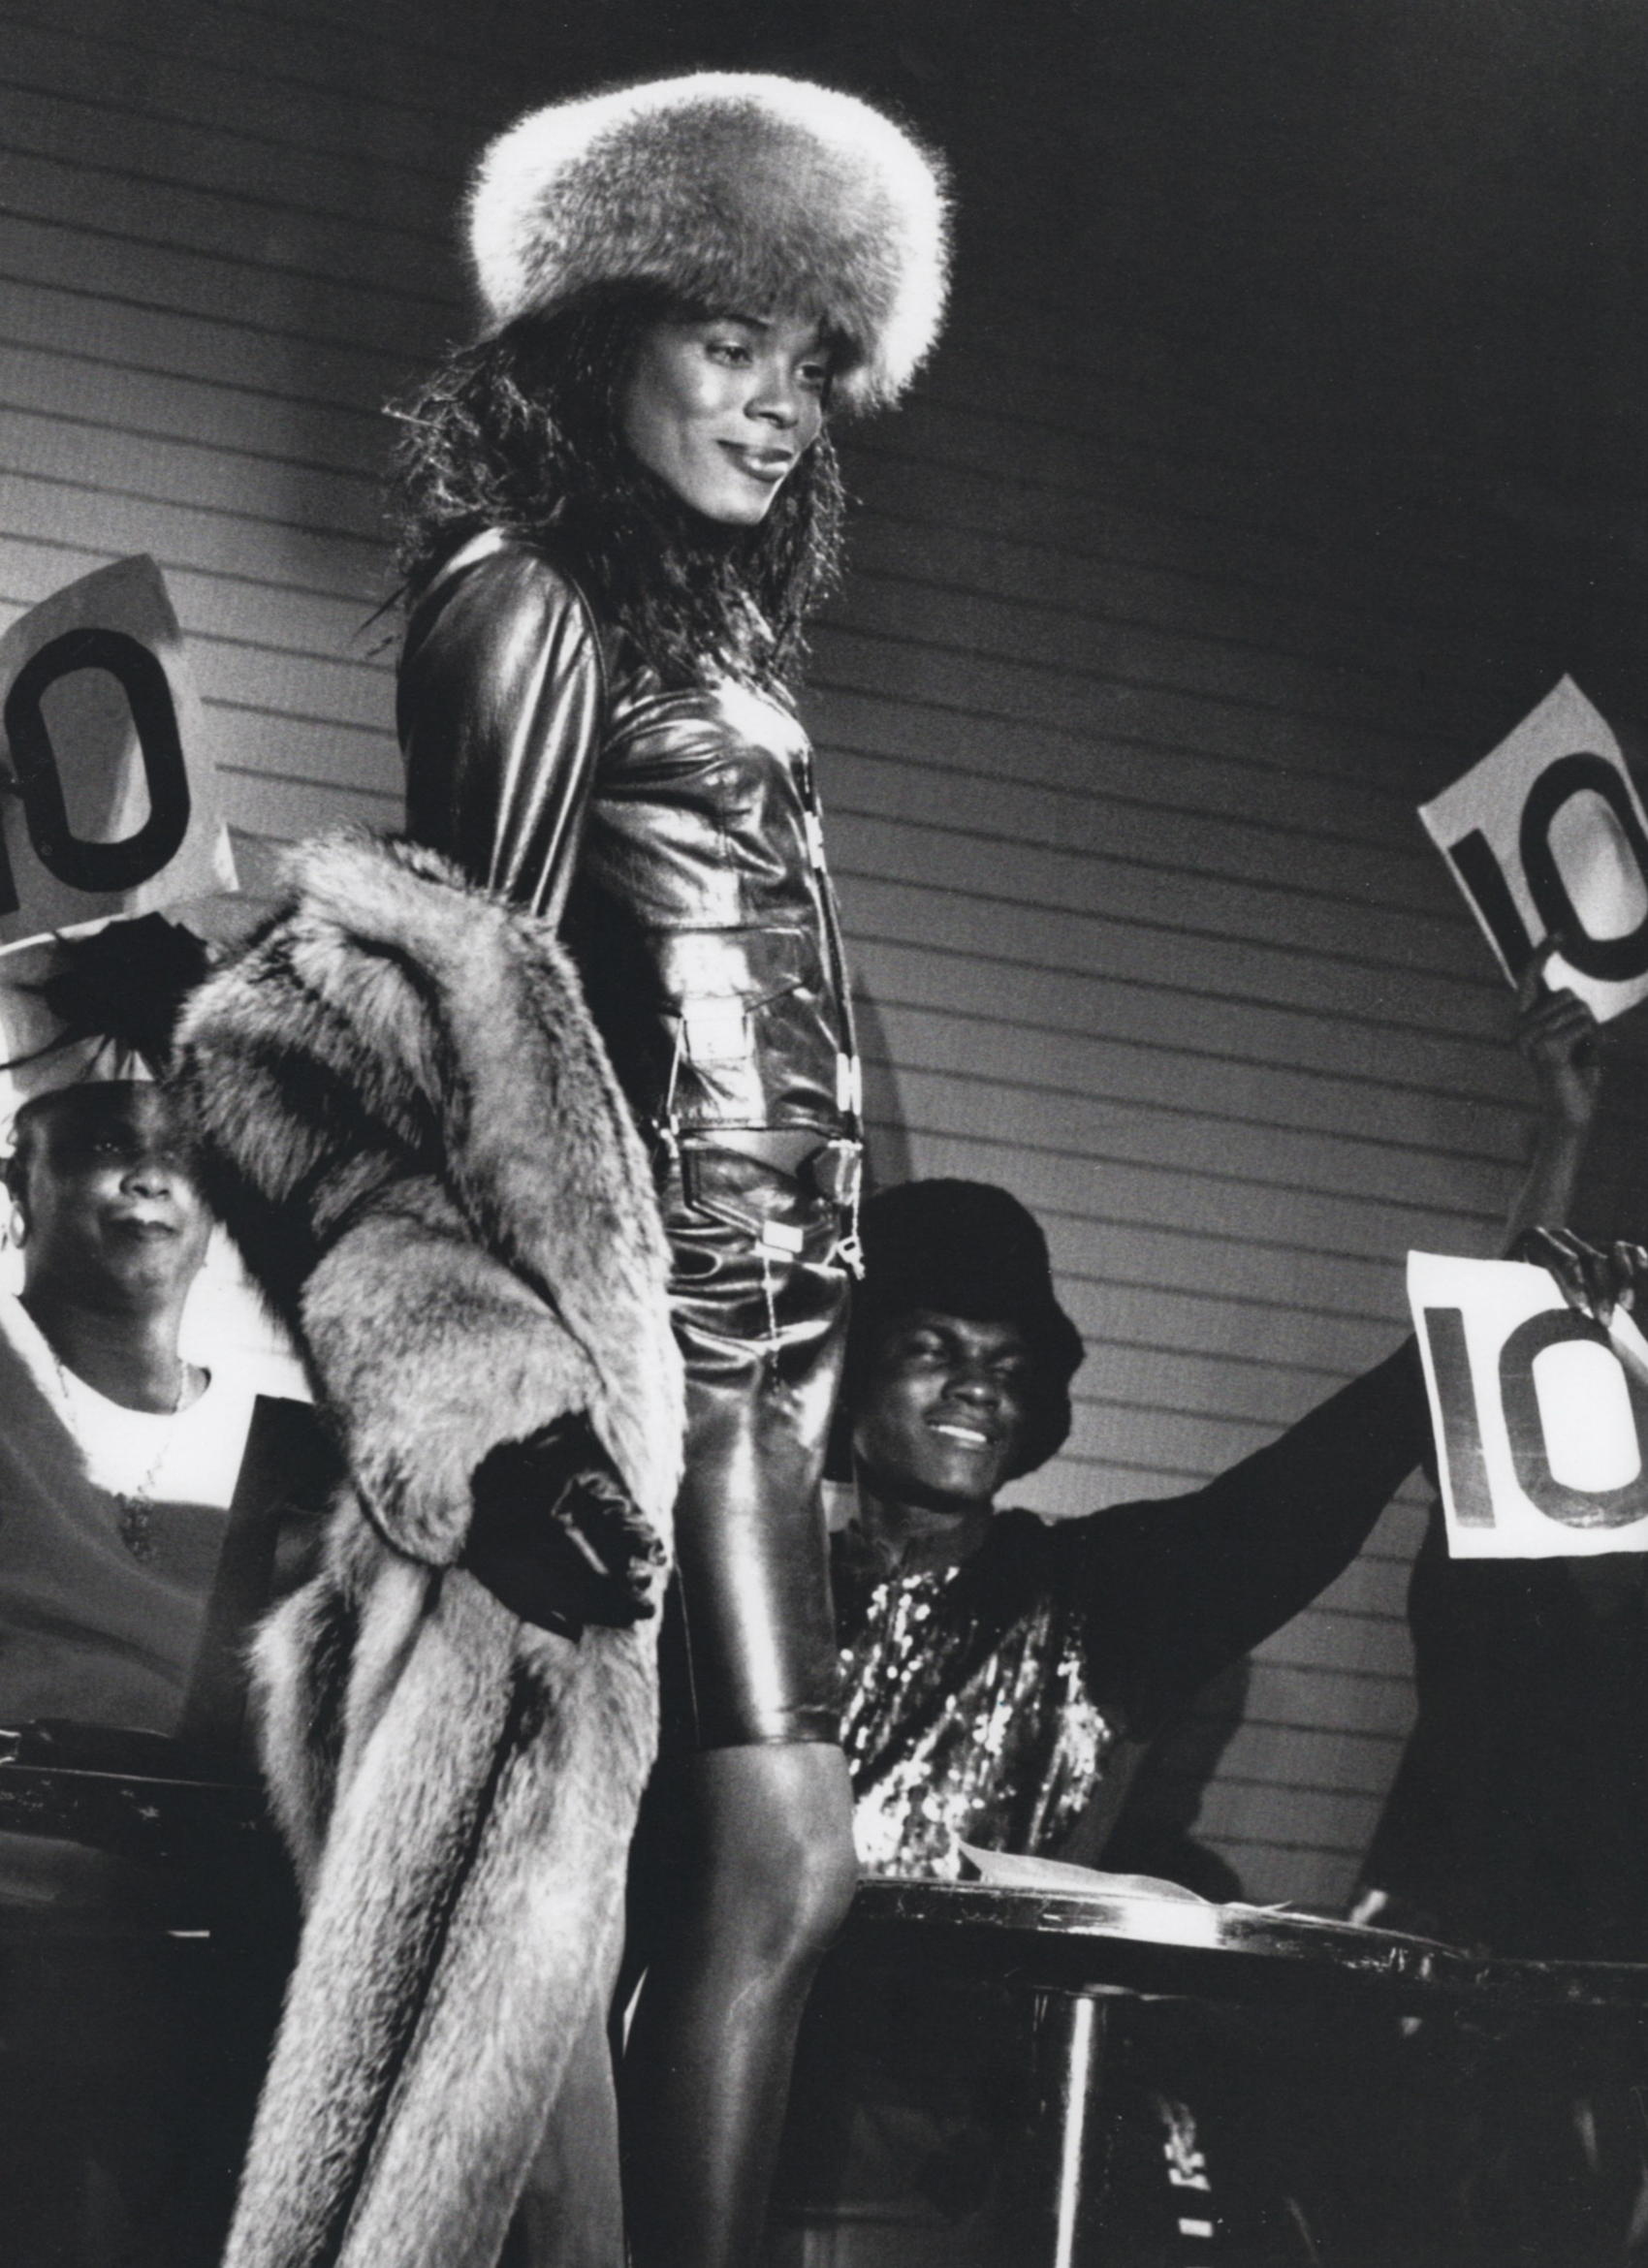 Tina Montana getting 10's across the board / Red Zone Club 1990